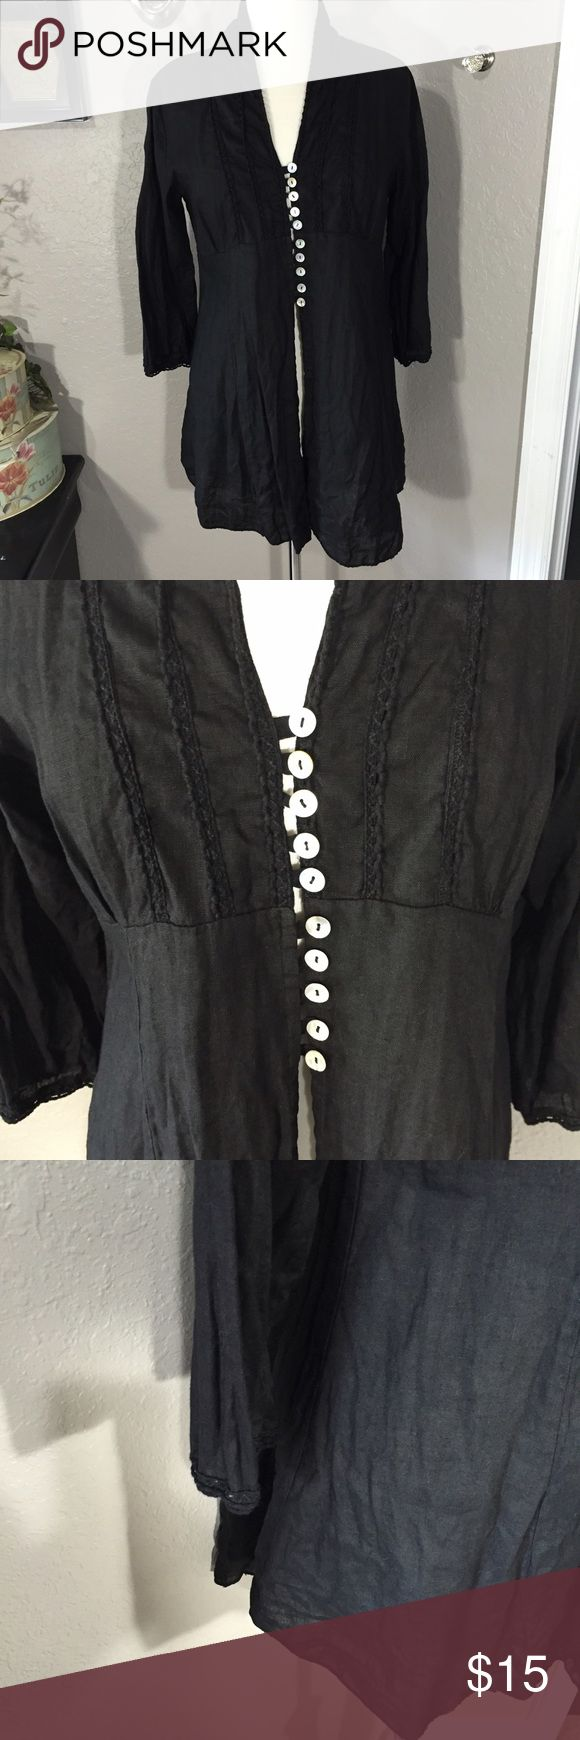 """Romeo & Julia Black Long Top Size M Great pre-loved condition. 100% Linen 🔅 Bust - 38"""" 🔅 Length - 31"""" (high-low average given) Romeo & Julia Tops"""